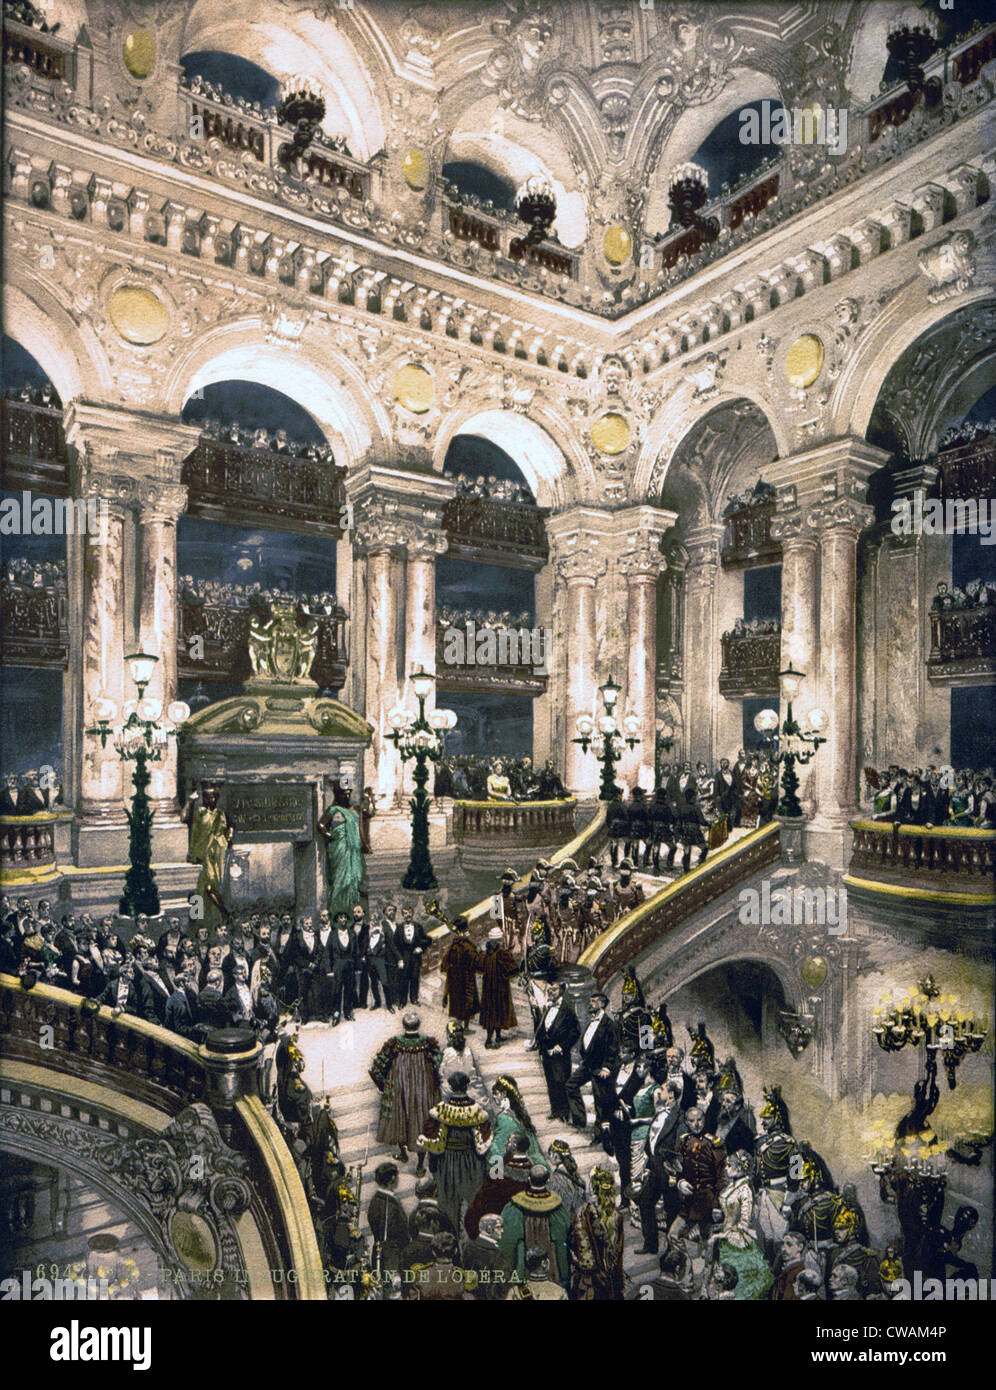 The grand staircase of the Paris Opera House as the notables enter with an honor guard its inauguration in 1875. - Stock Image